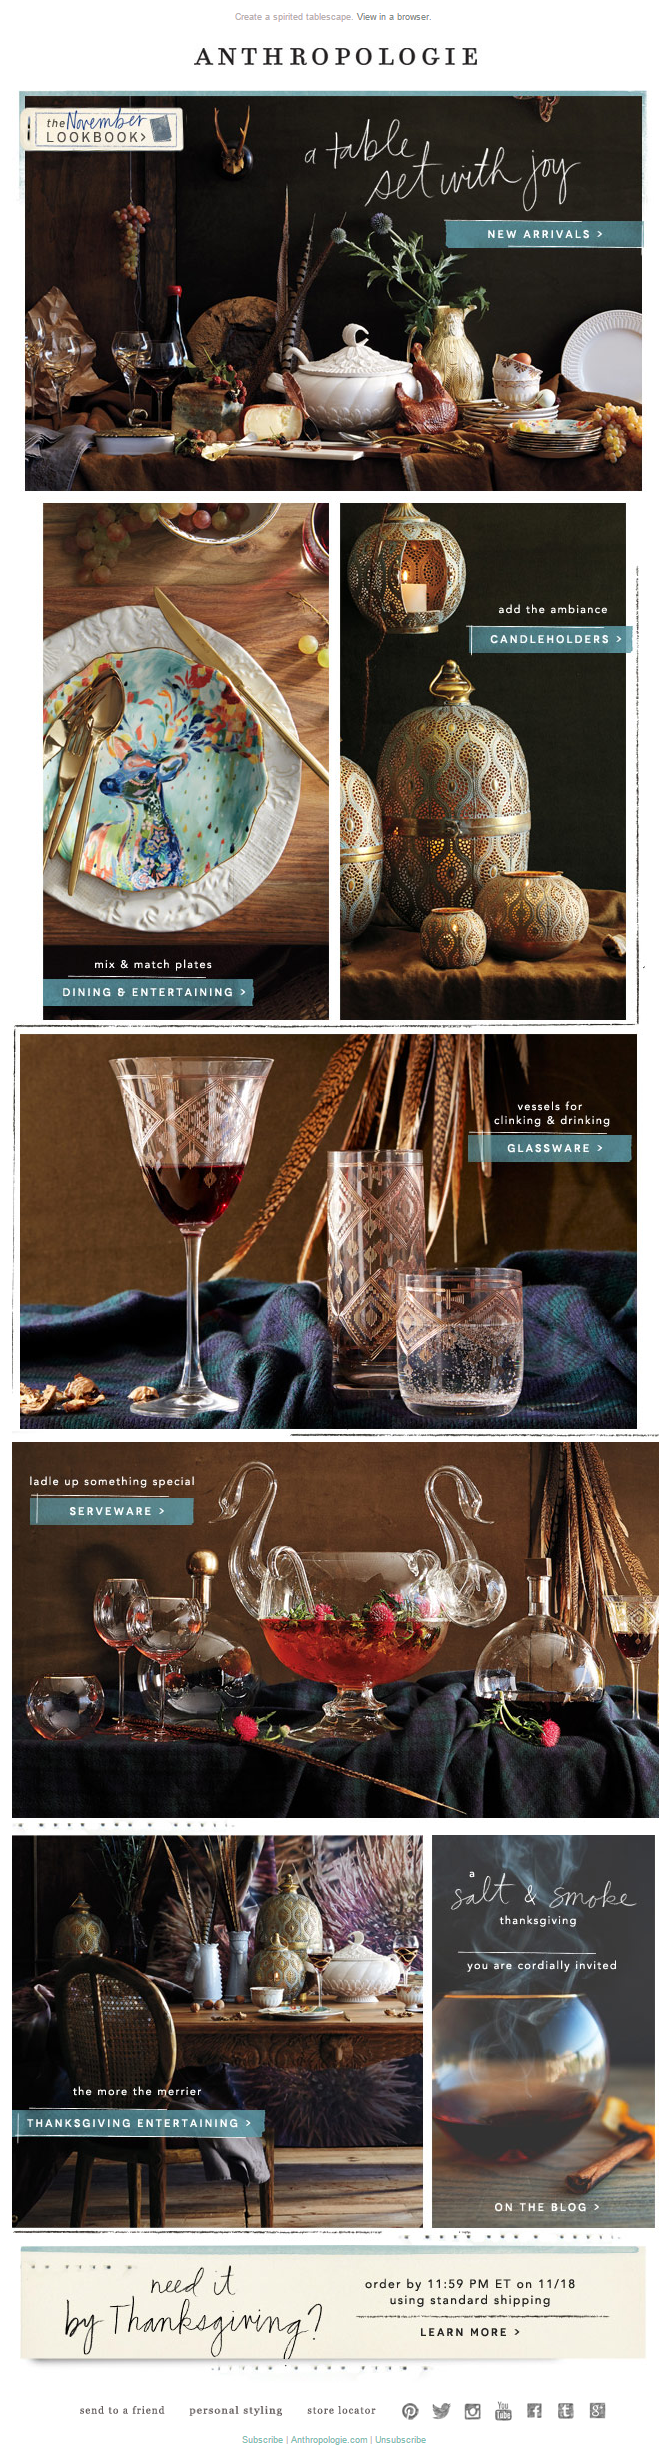 Anthropologie Thanksgiving email 2014